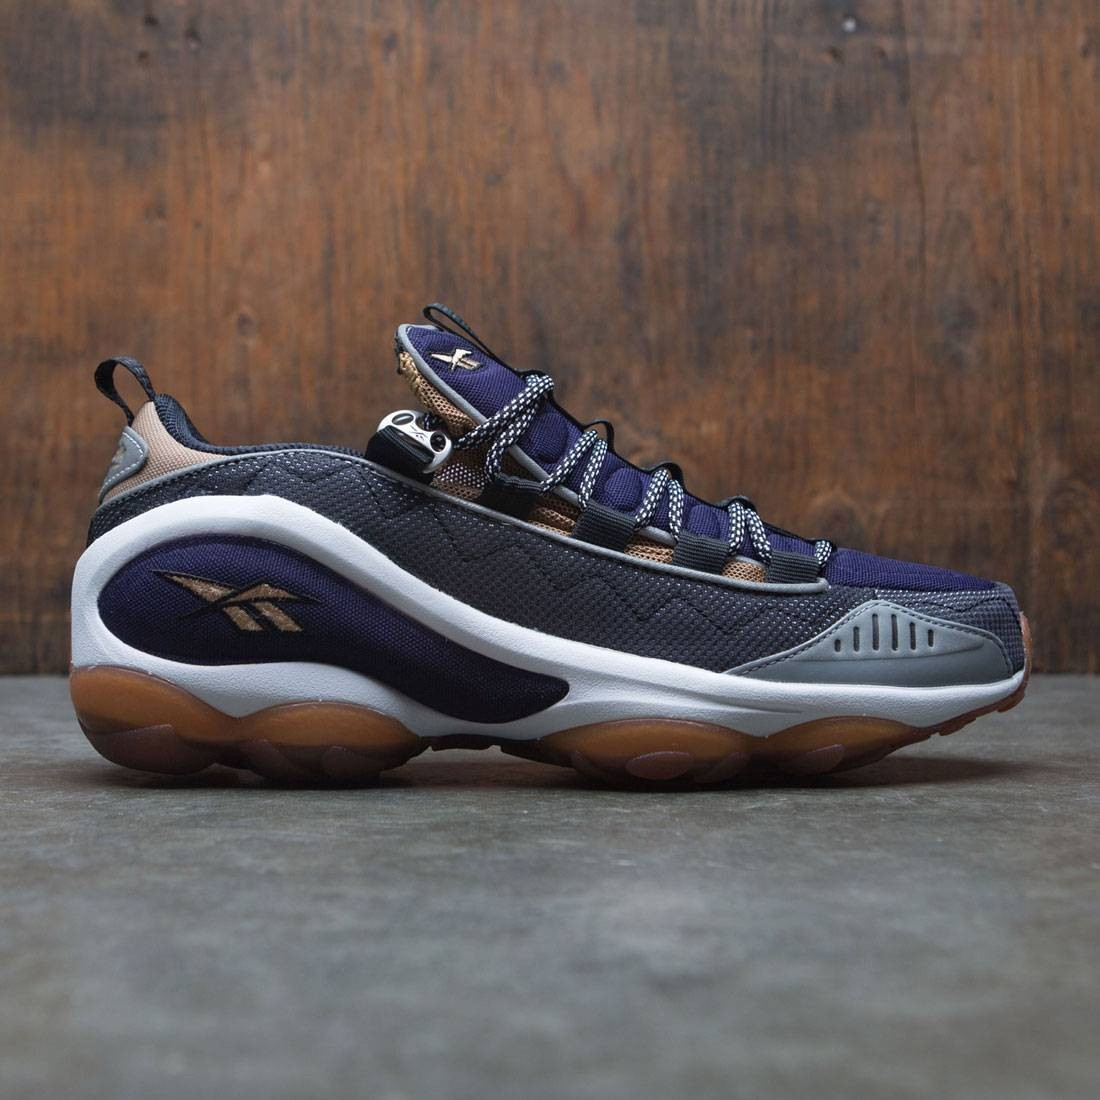 Reebok Men DMX Run 10 (black / white / tweed brown / thunder blue / silver)